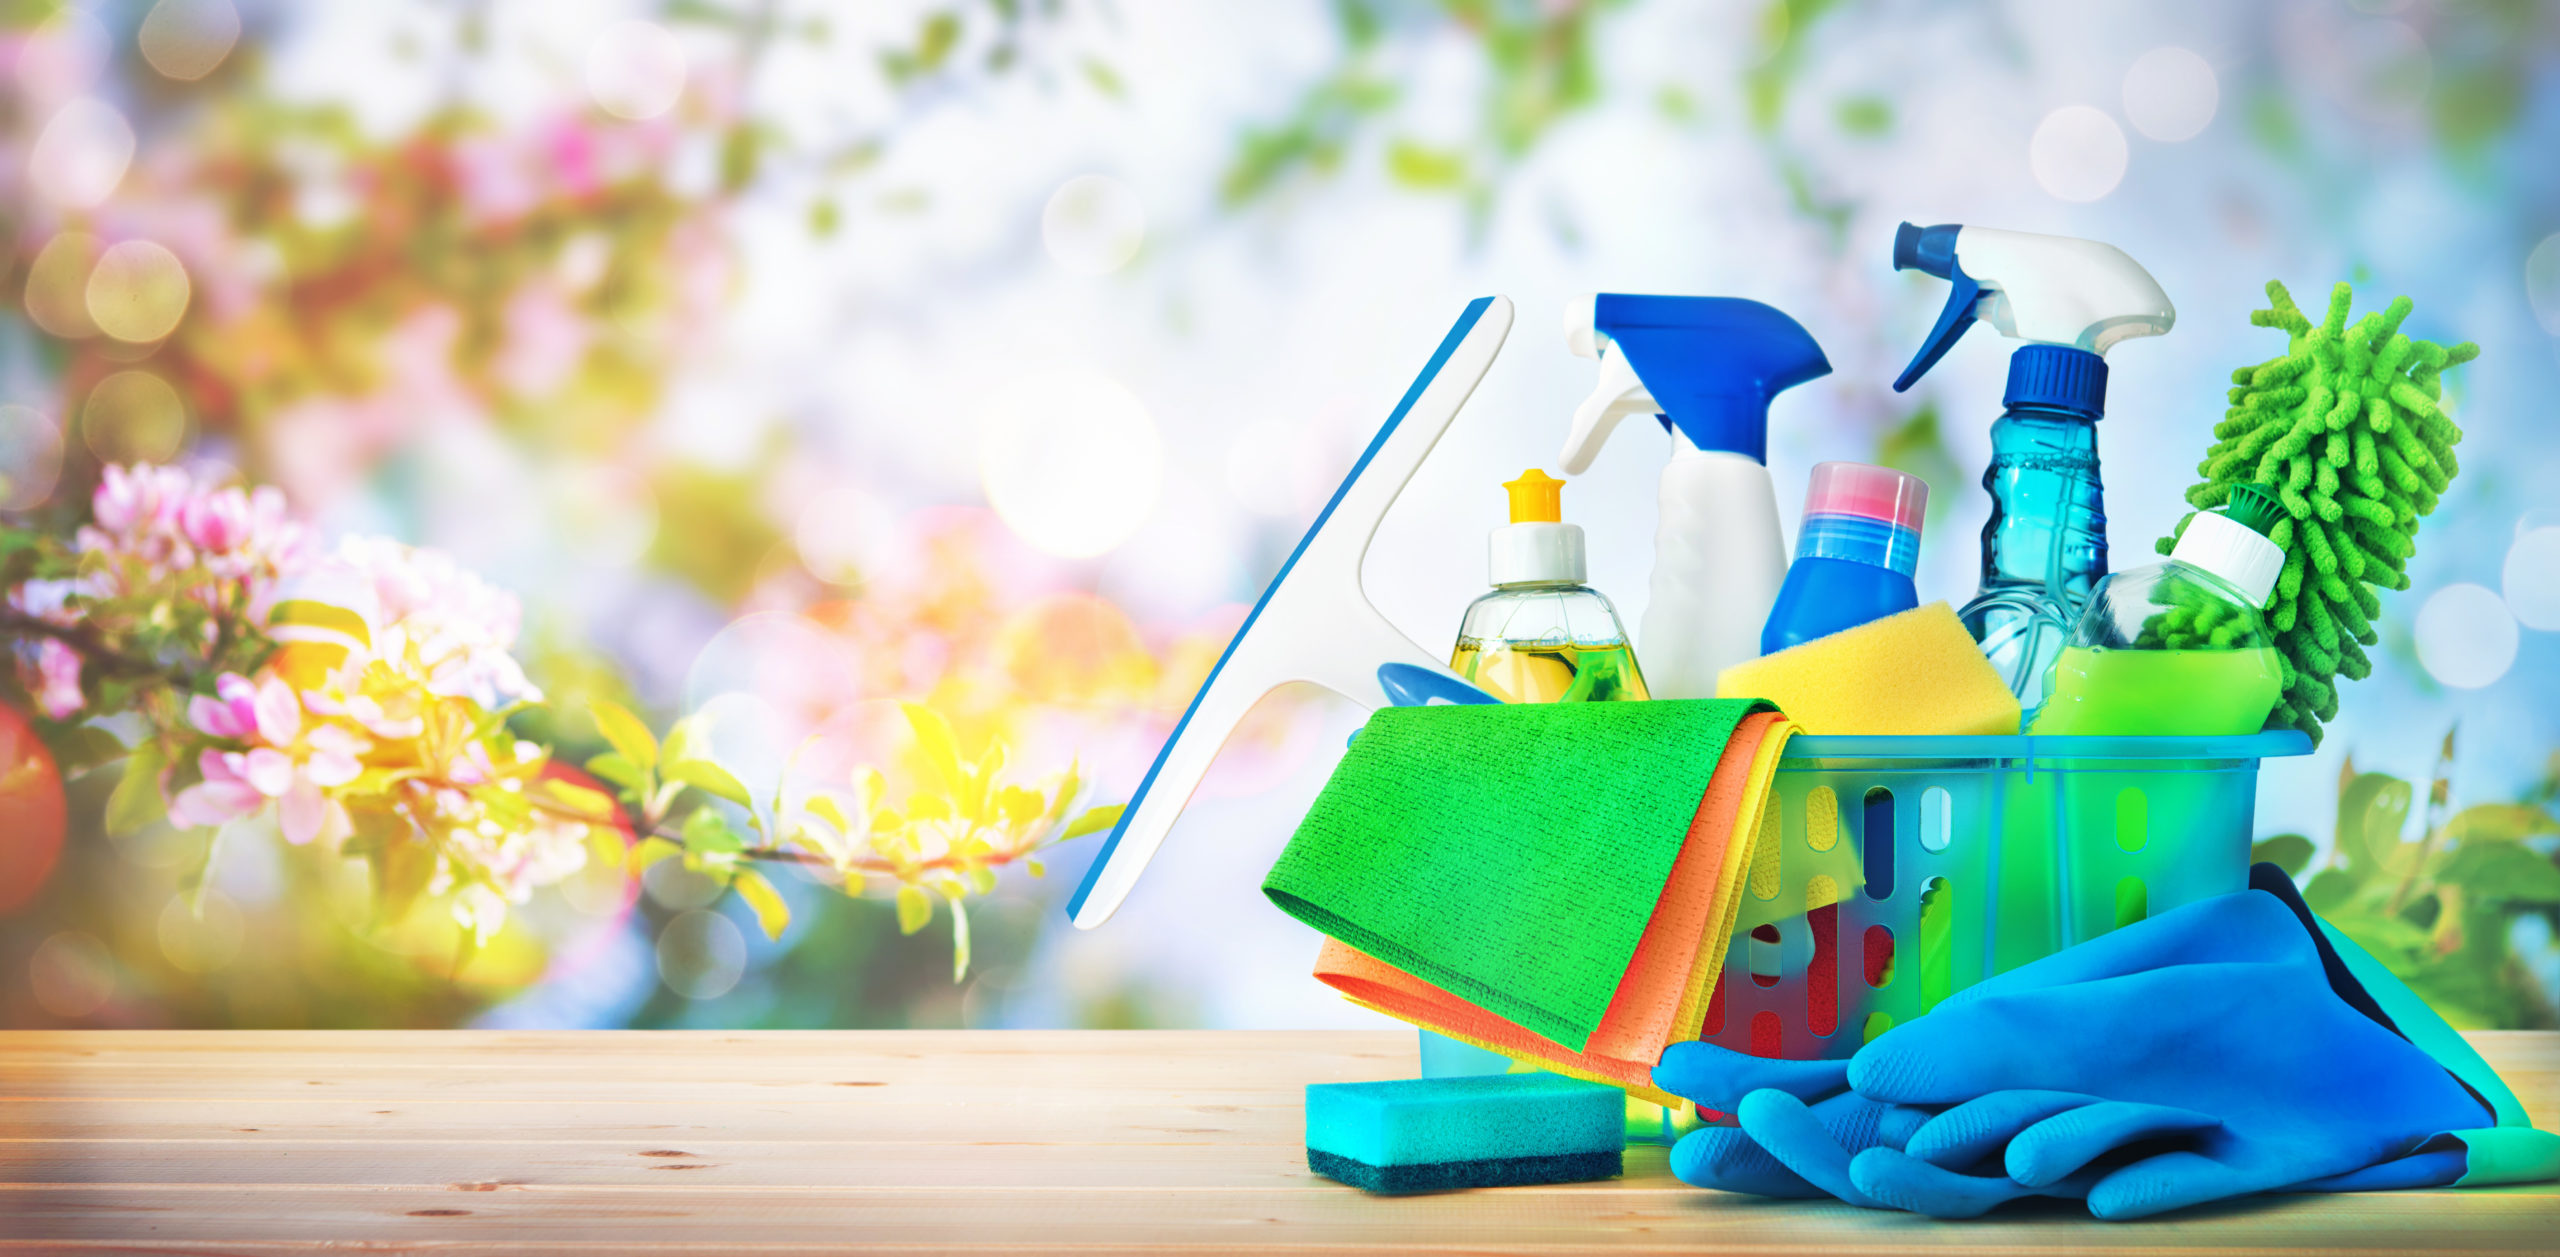 Cleaning Products Against Spring Background